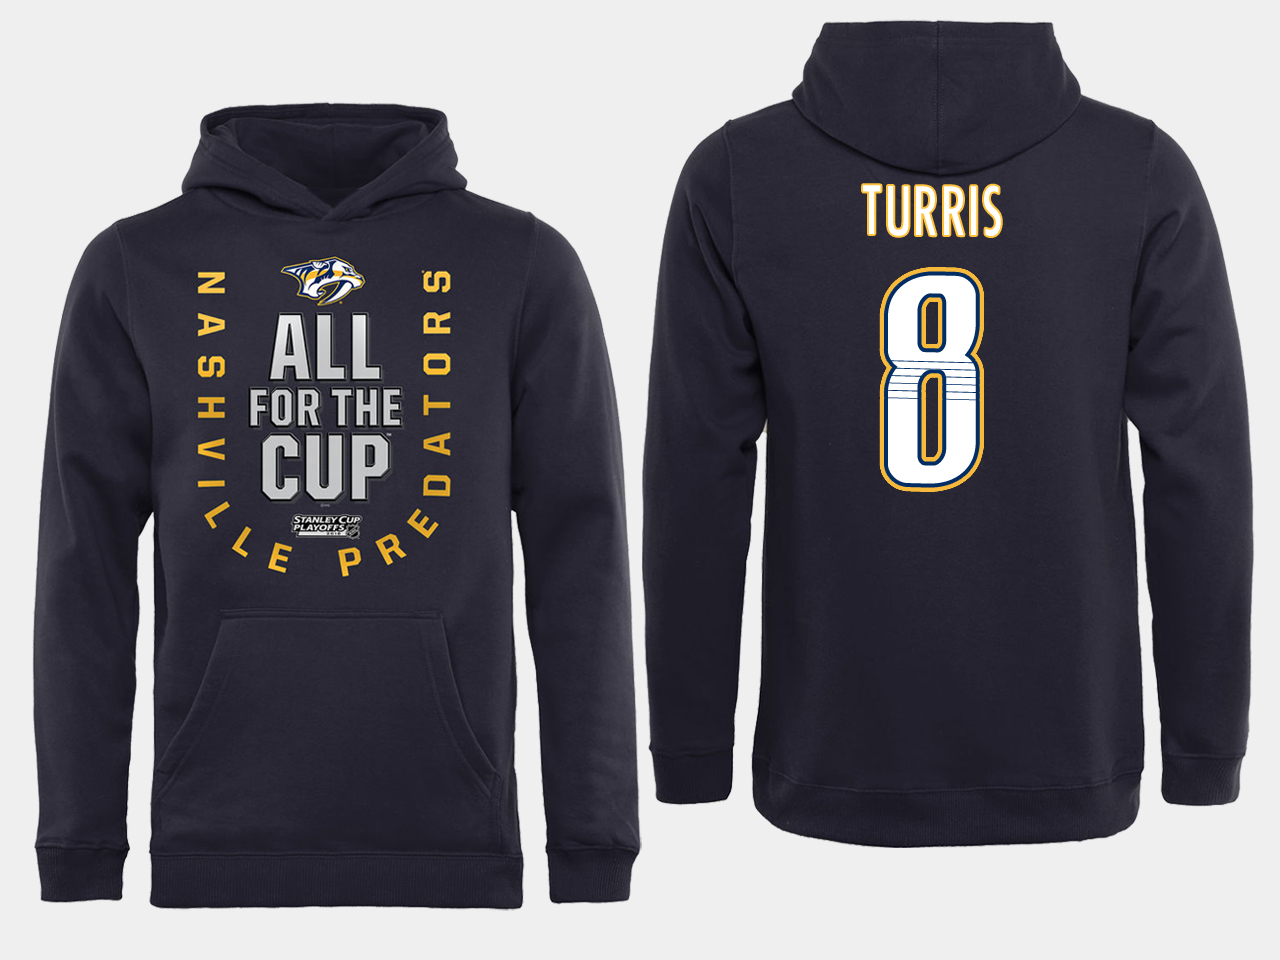 Men NHL Adidas Nashville Predators 8 Turris black ALL for the Cup hoodie